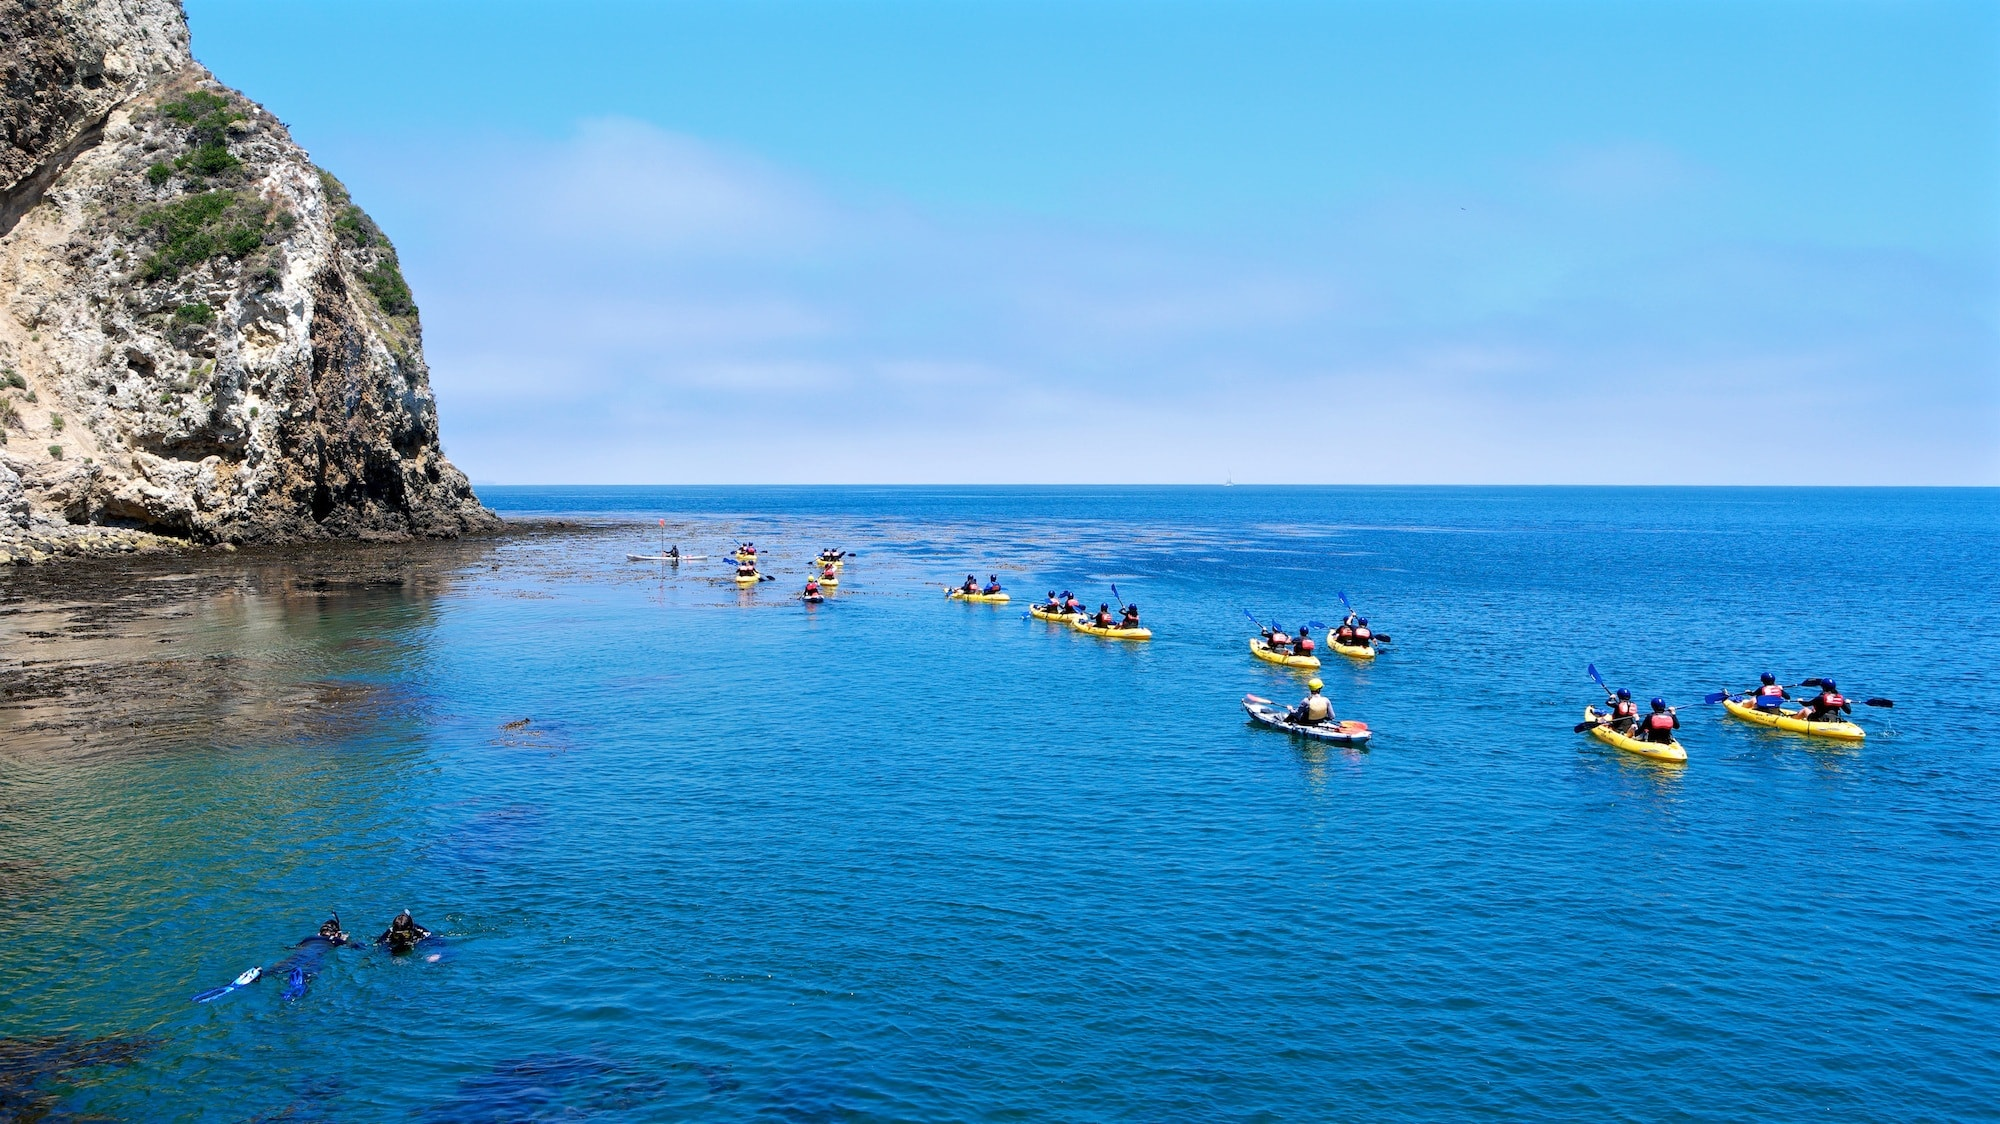 Kayaking off Santa Cruz Island with the Santa Barbara Adventure Company // Get the scoop on camping, hiking, marine life & outdoor adventure in this outdoor enthusiasts guide to the five islands of Channel Islands National Park.